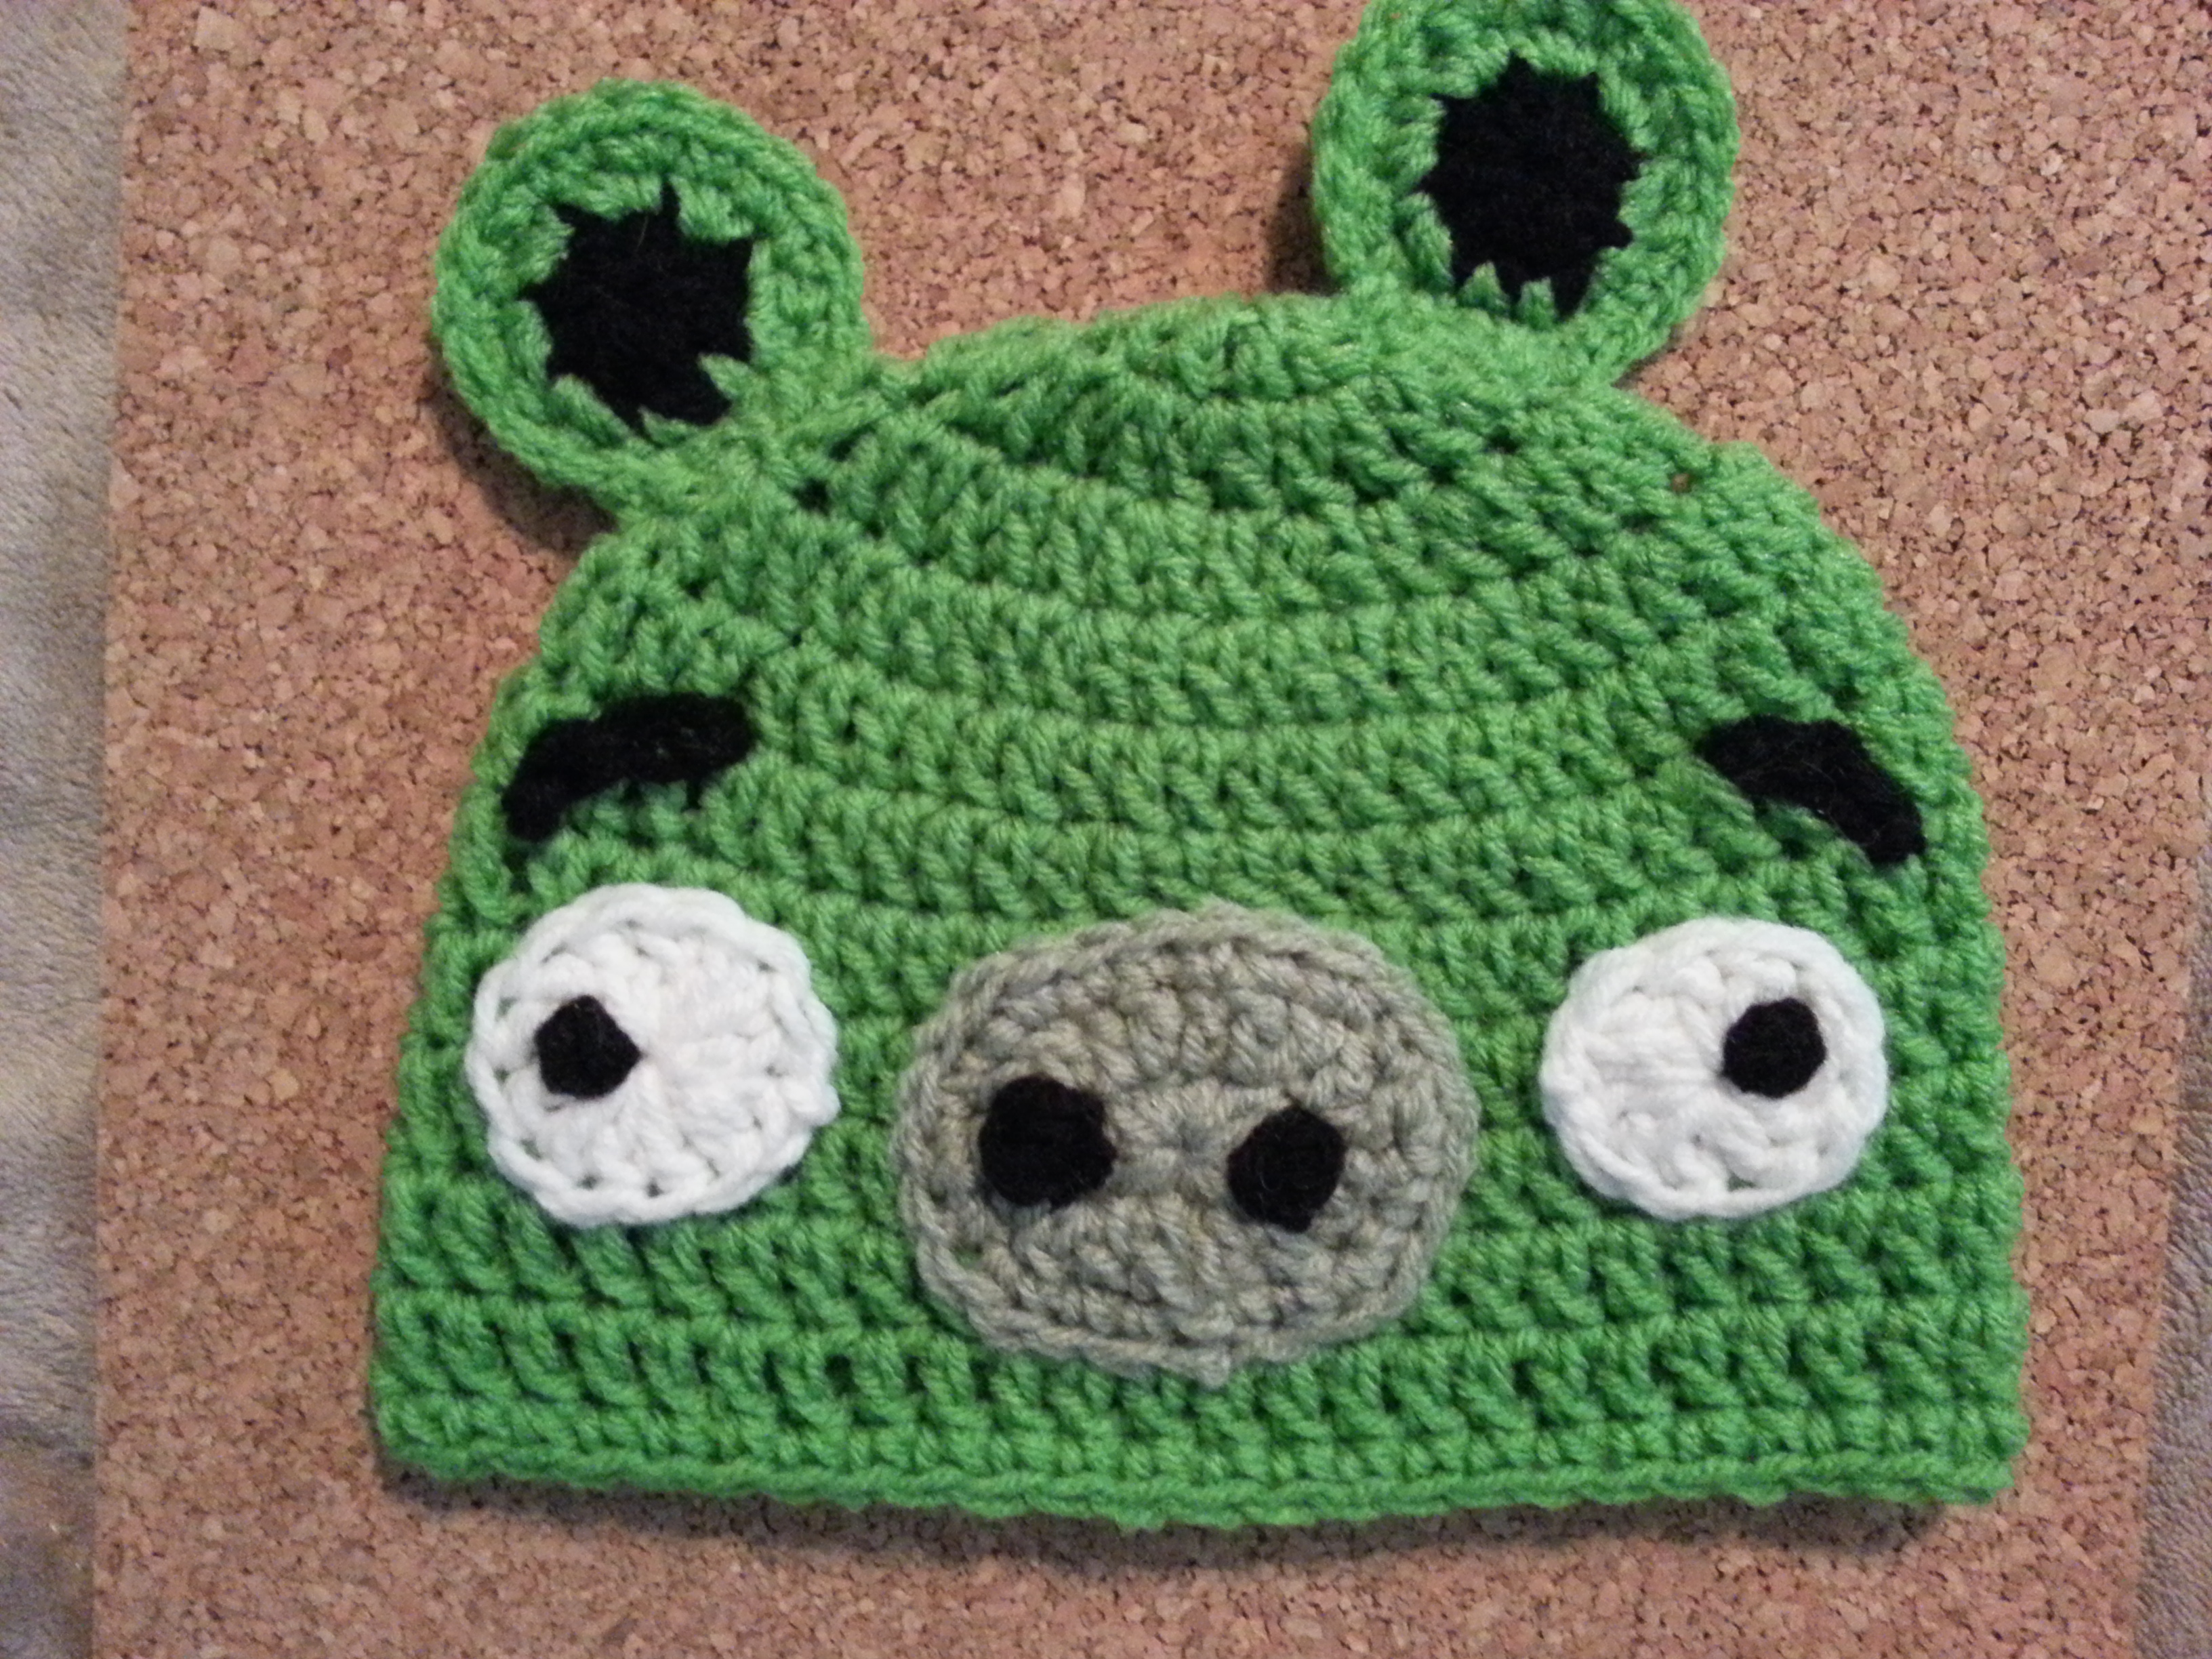 Crochet Hat Pattern Angry Bird : Animal and Character Hats Archives cRAfterchick - Free ...